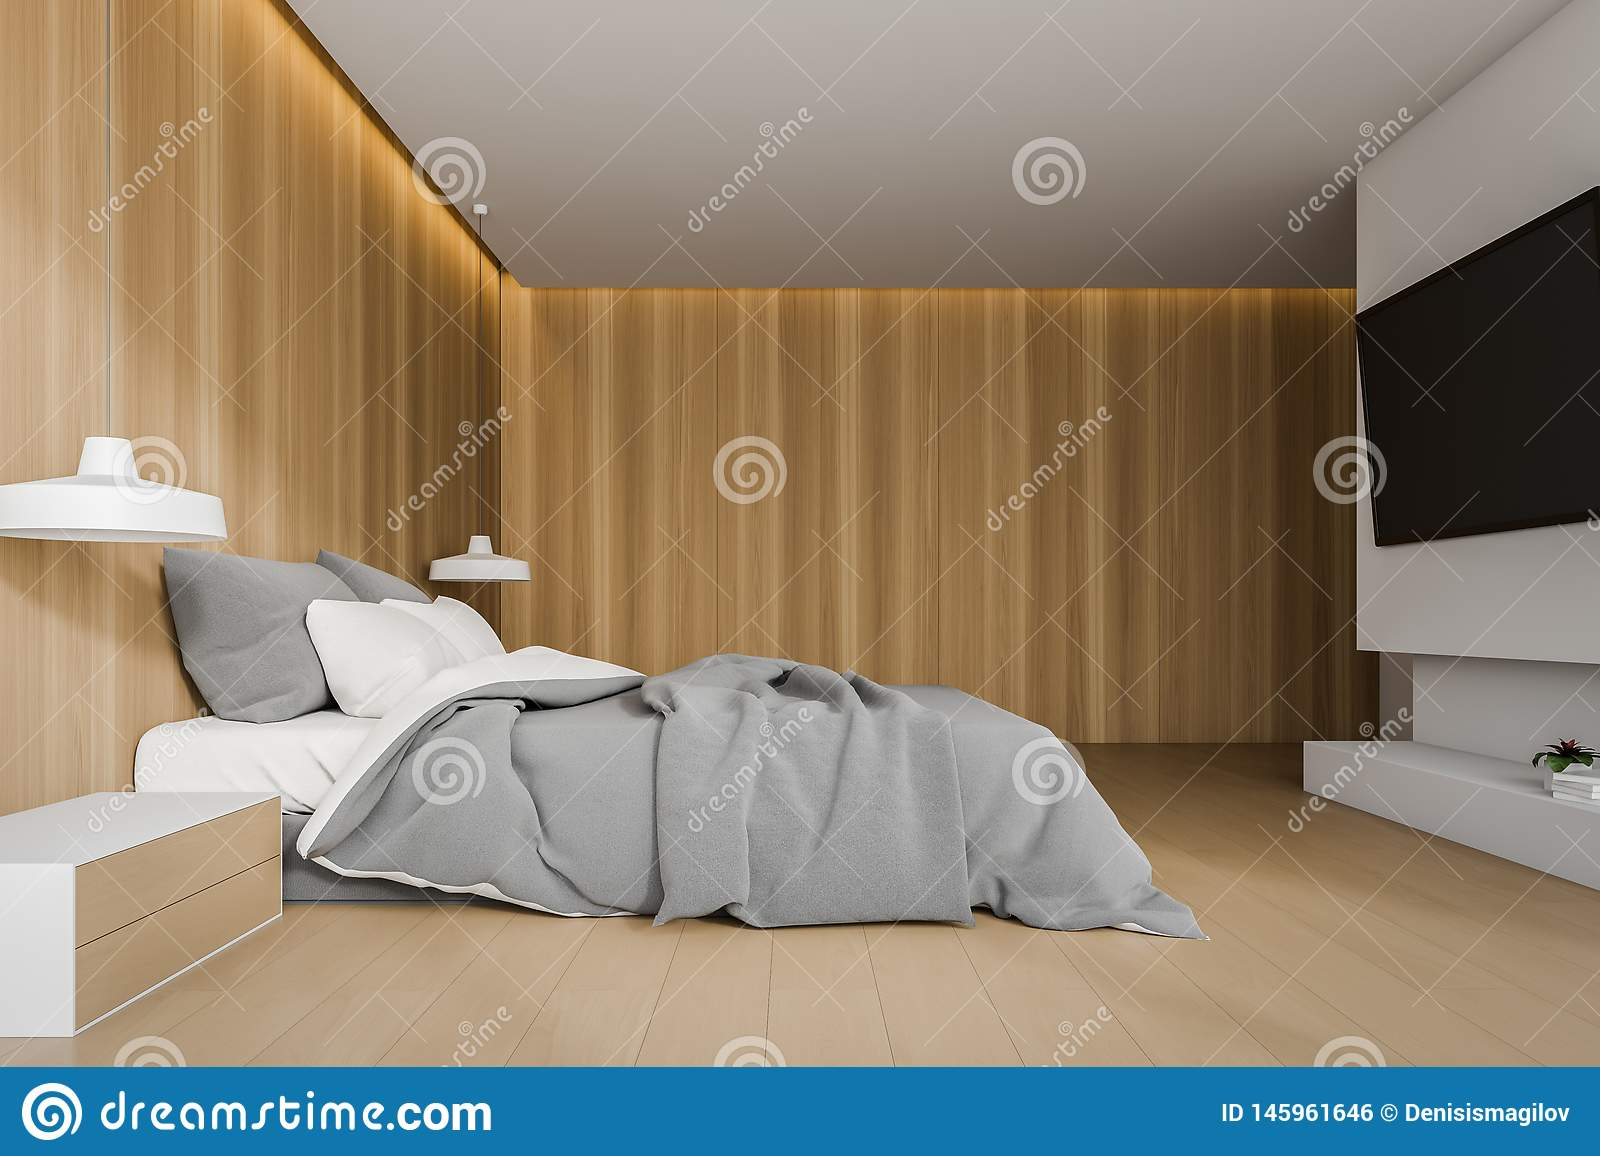 Wooden Bedroom Interior With Tv Set Stock Illustration